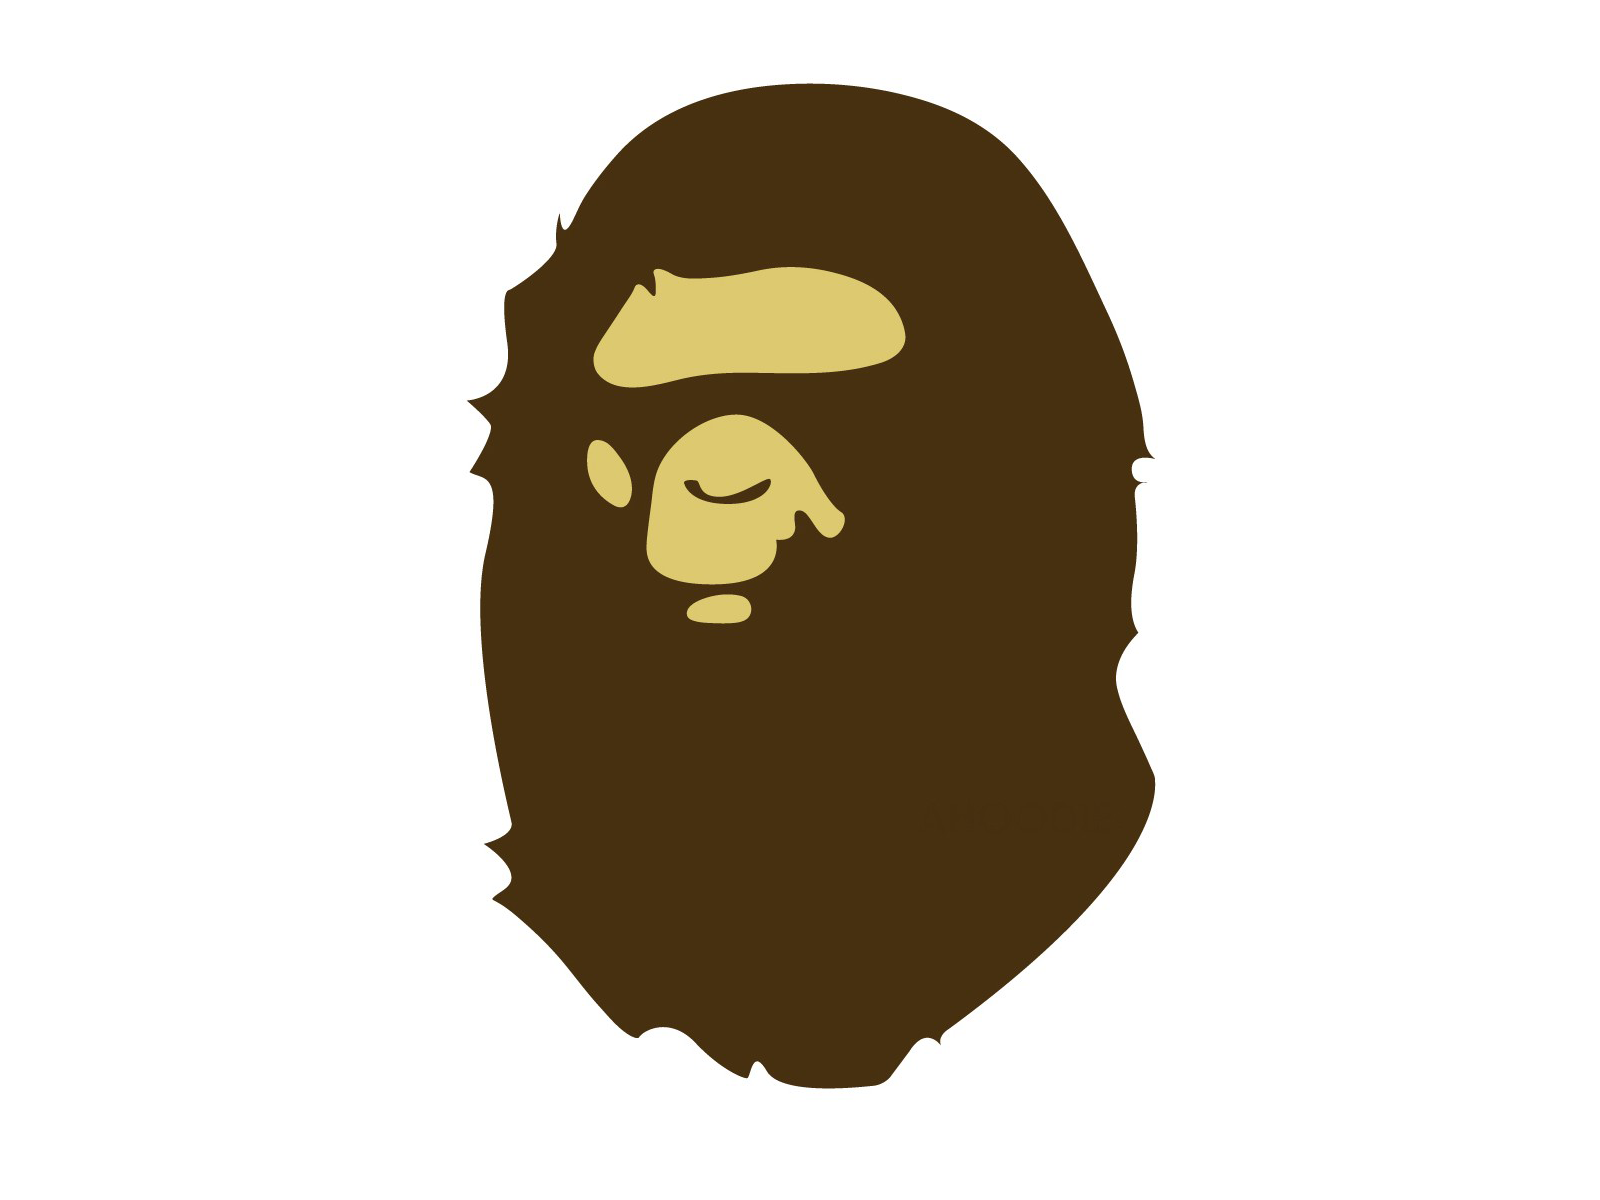 Bape Clothing Styles And Characters